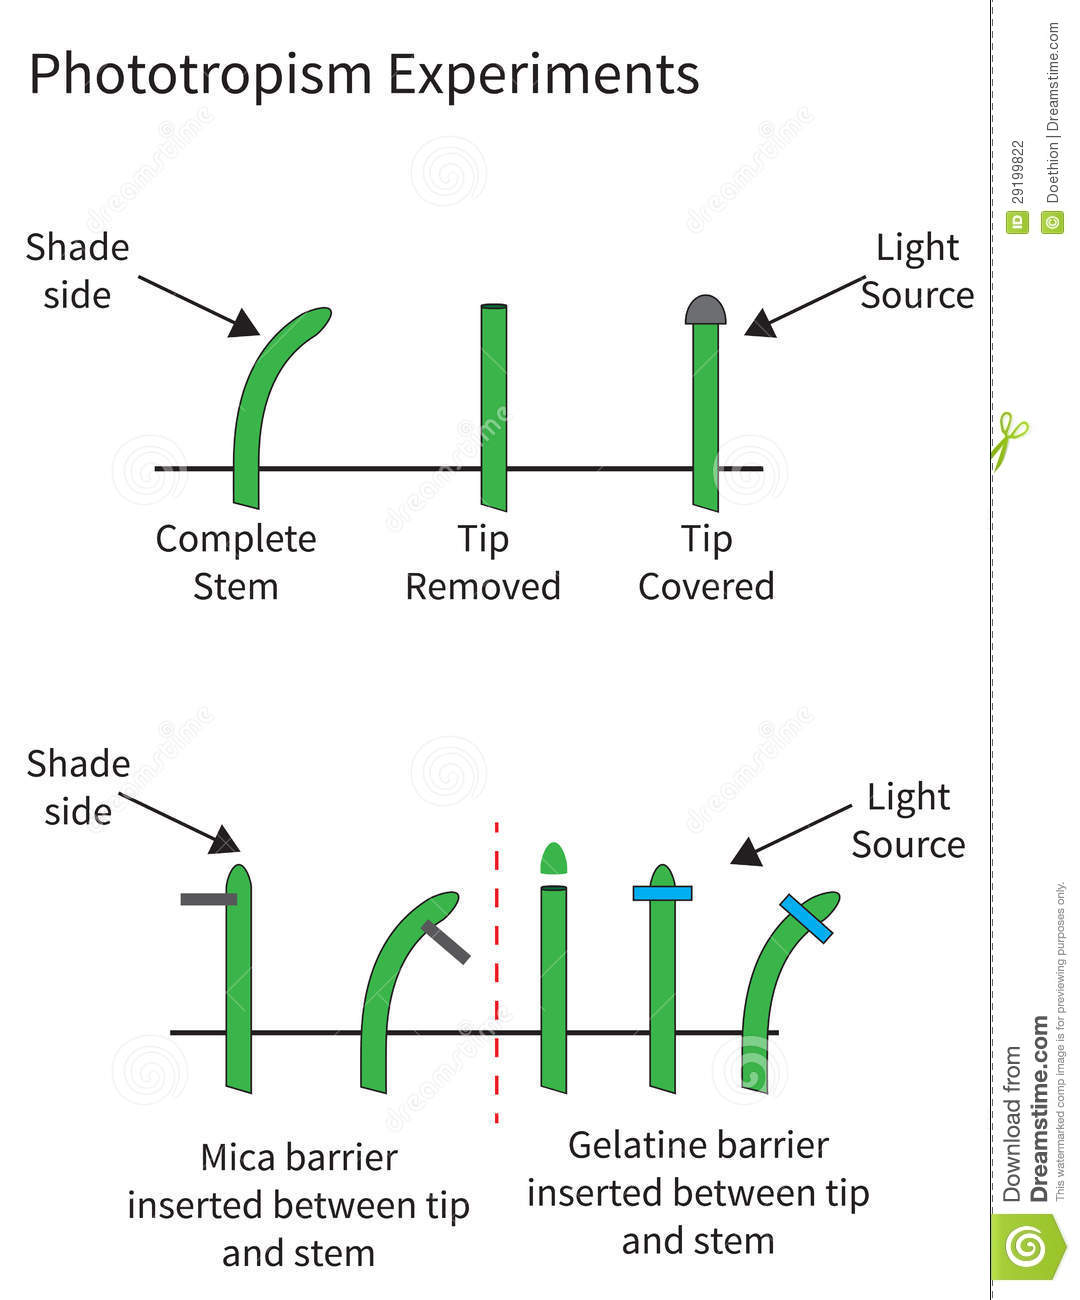 auxin in phototropism In phototropism, however, this growth hormone is distributed unevenly when the light source comes from only one direction specifically, more auxin flows down the dark side, meaning that it grows faster than the exposed side of the plant.